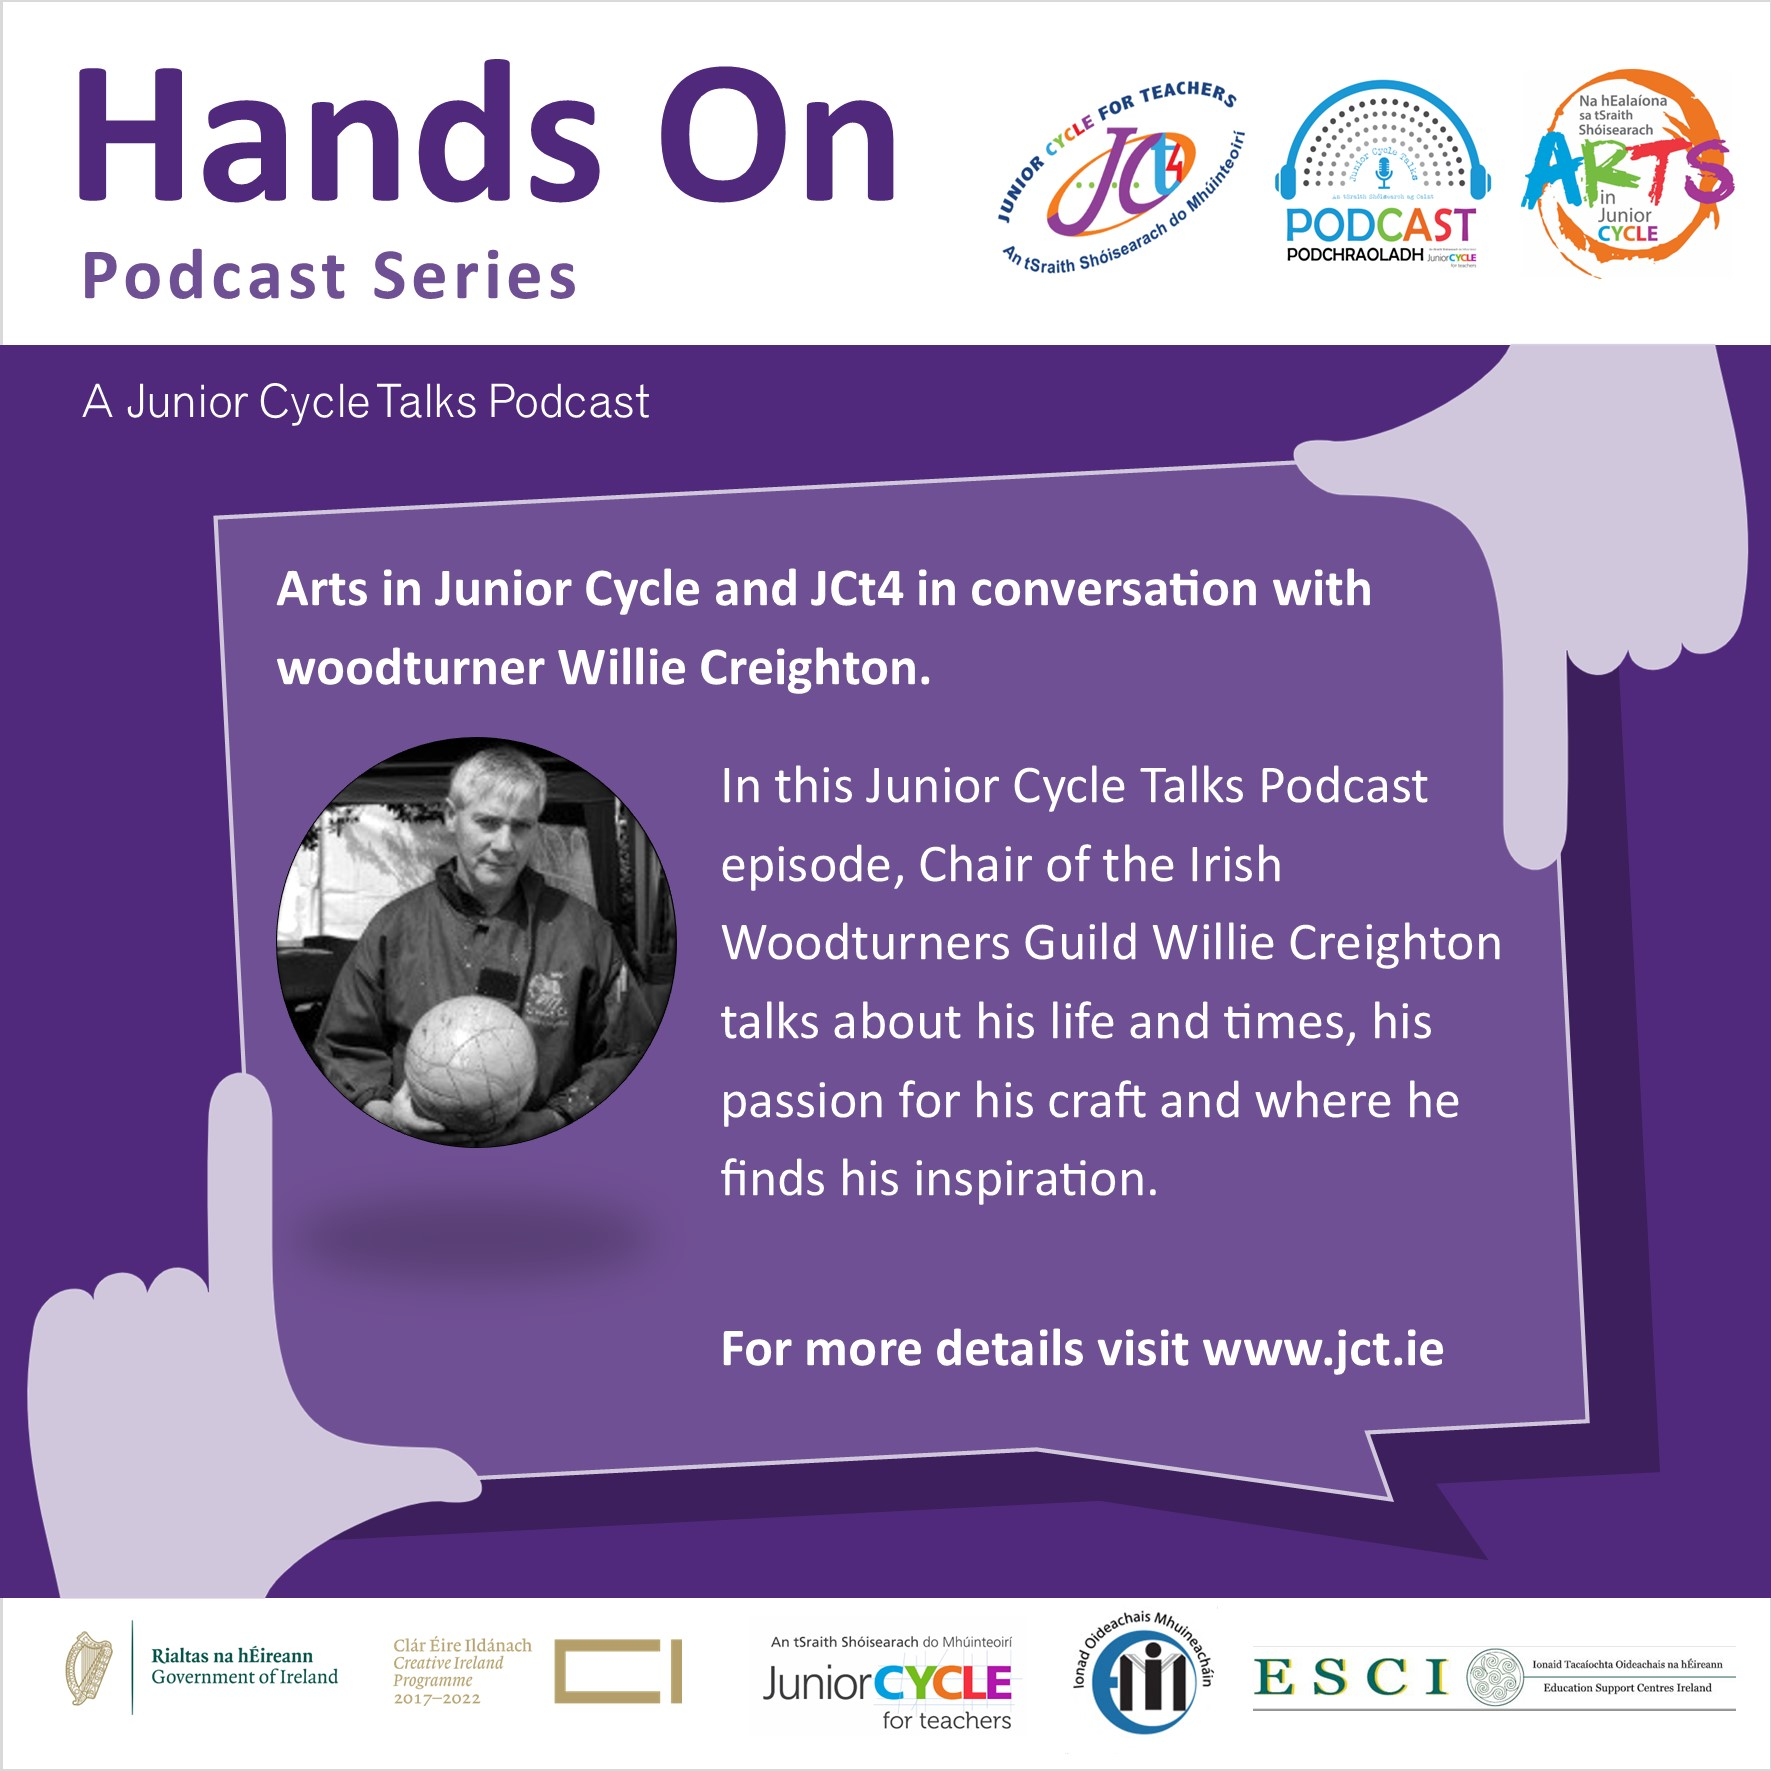 Arts in Junior Cycle and JCt4 in Conversation with Woodturner Willie Creighton